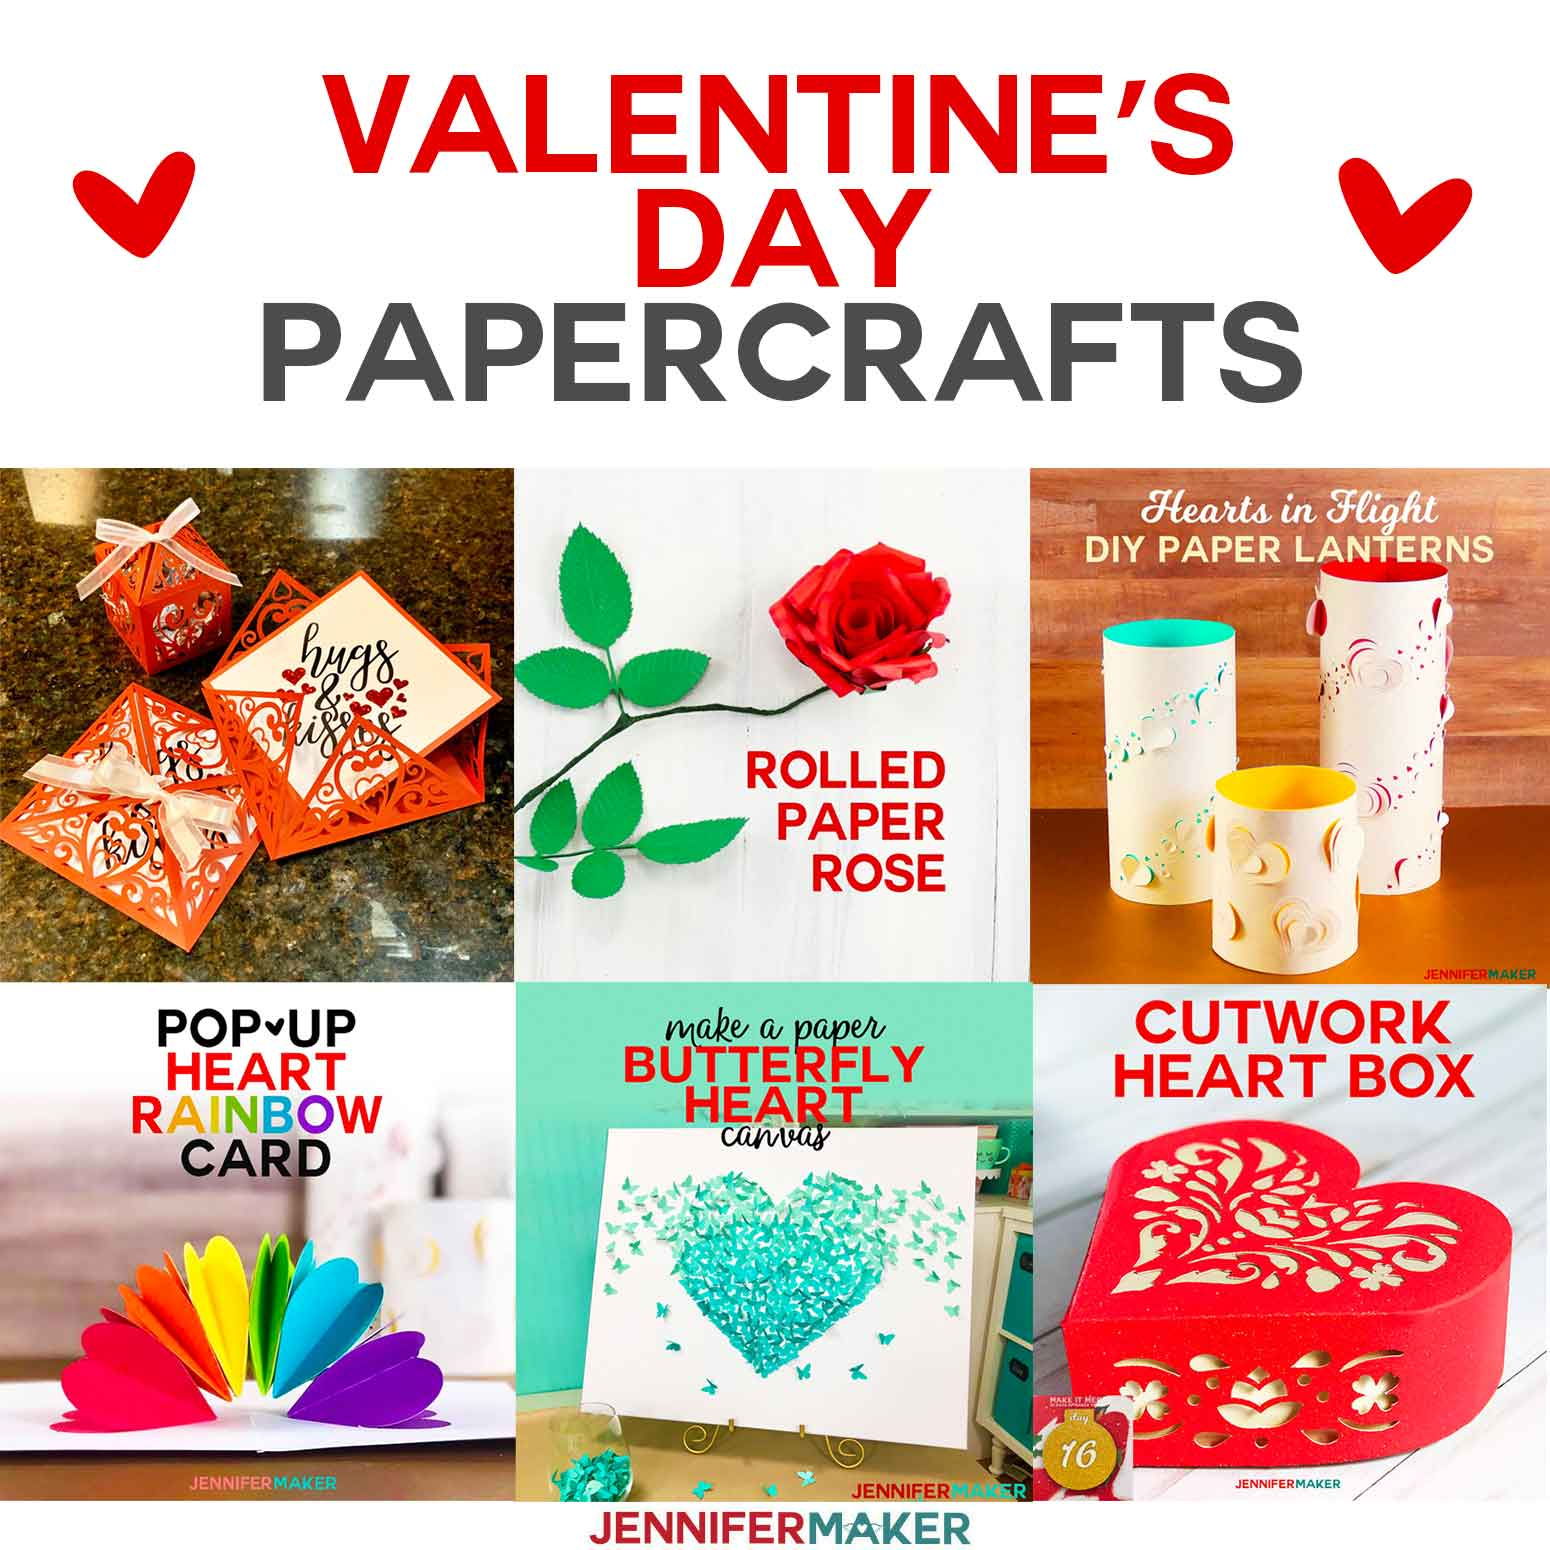 Valentine's Day Crafts from cards to paper flowers to lanterns